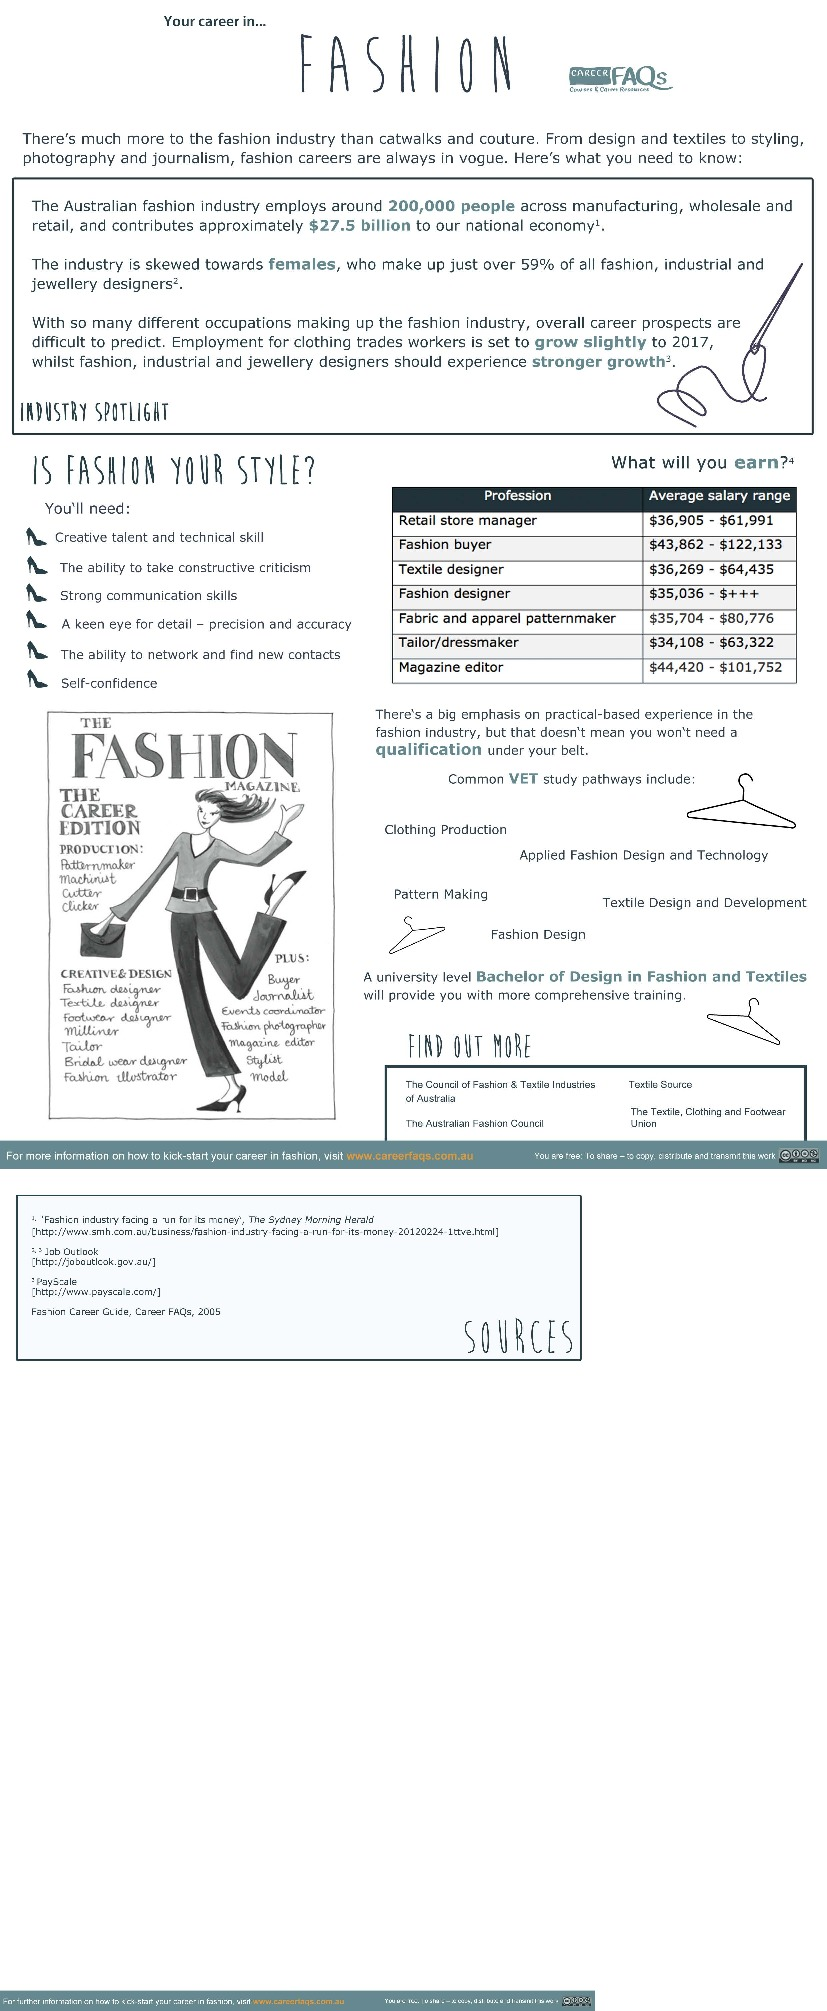 Fashion Career Fact Sheet Visual Ly